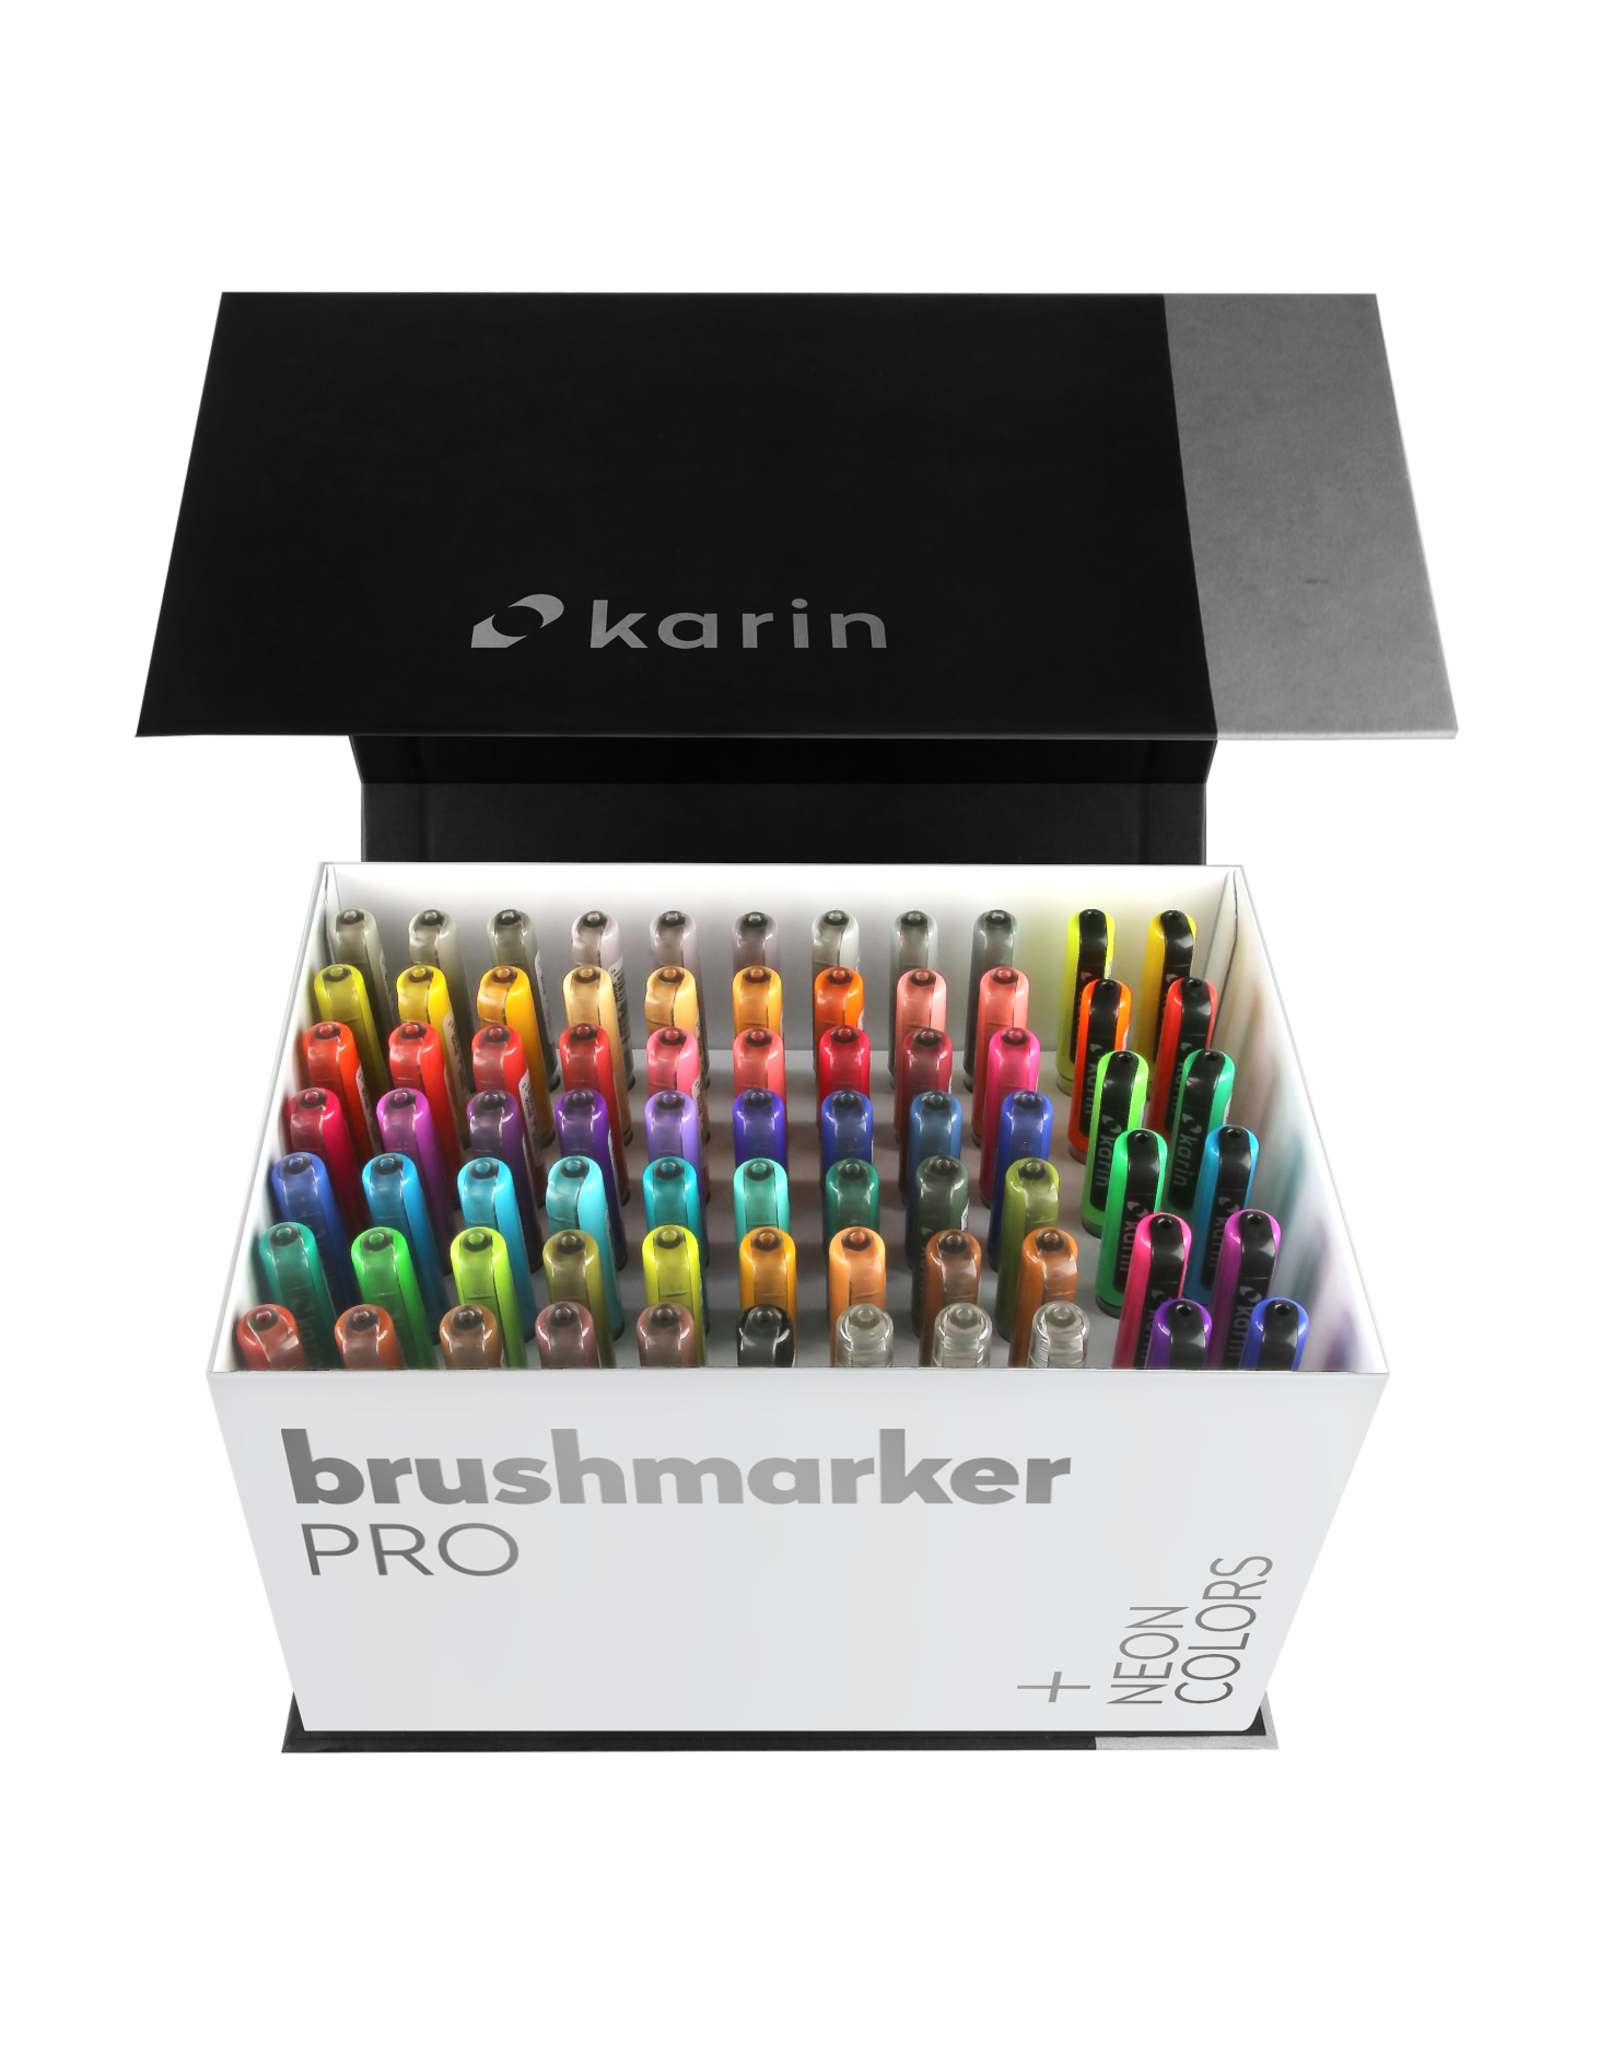 Karin Brushmarker PRO Mega Box PLUS 72 colors + 3 blenders set